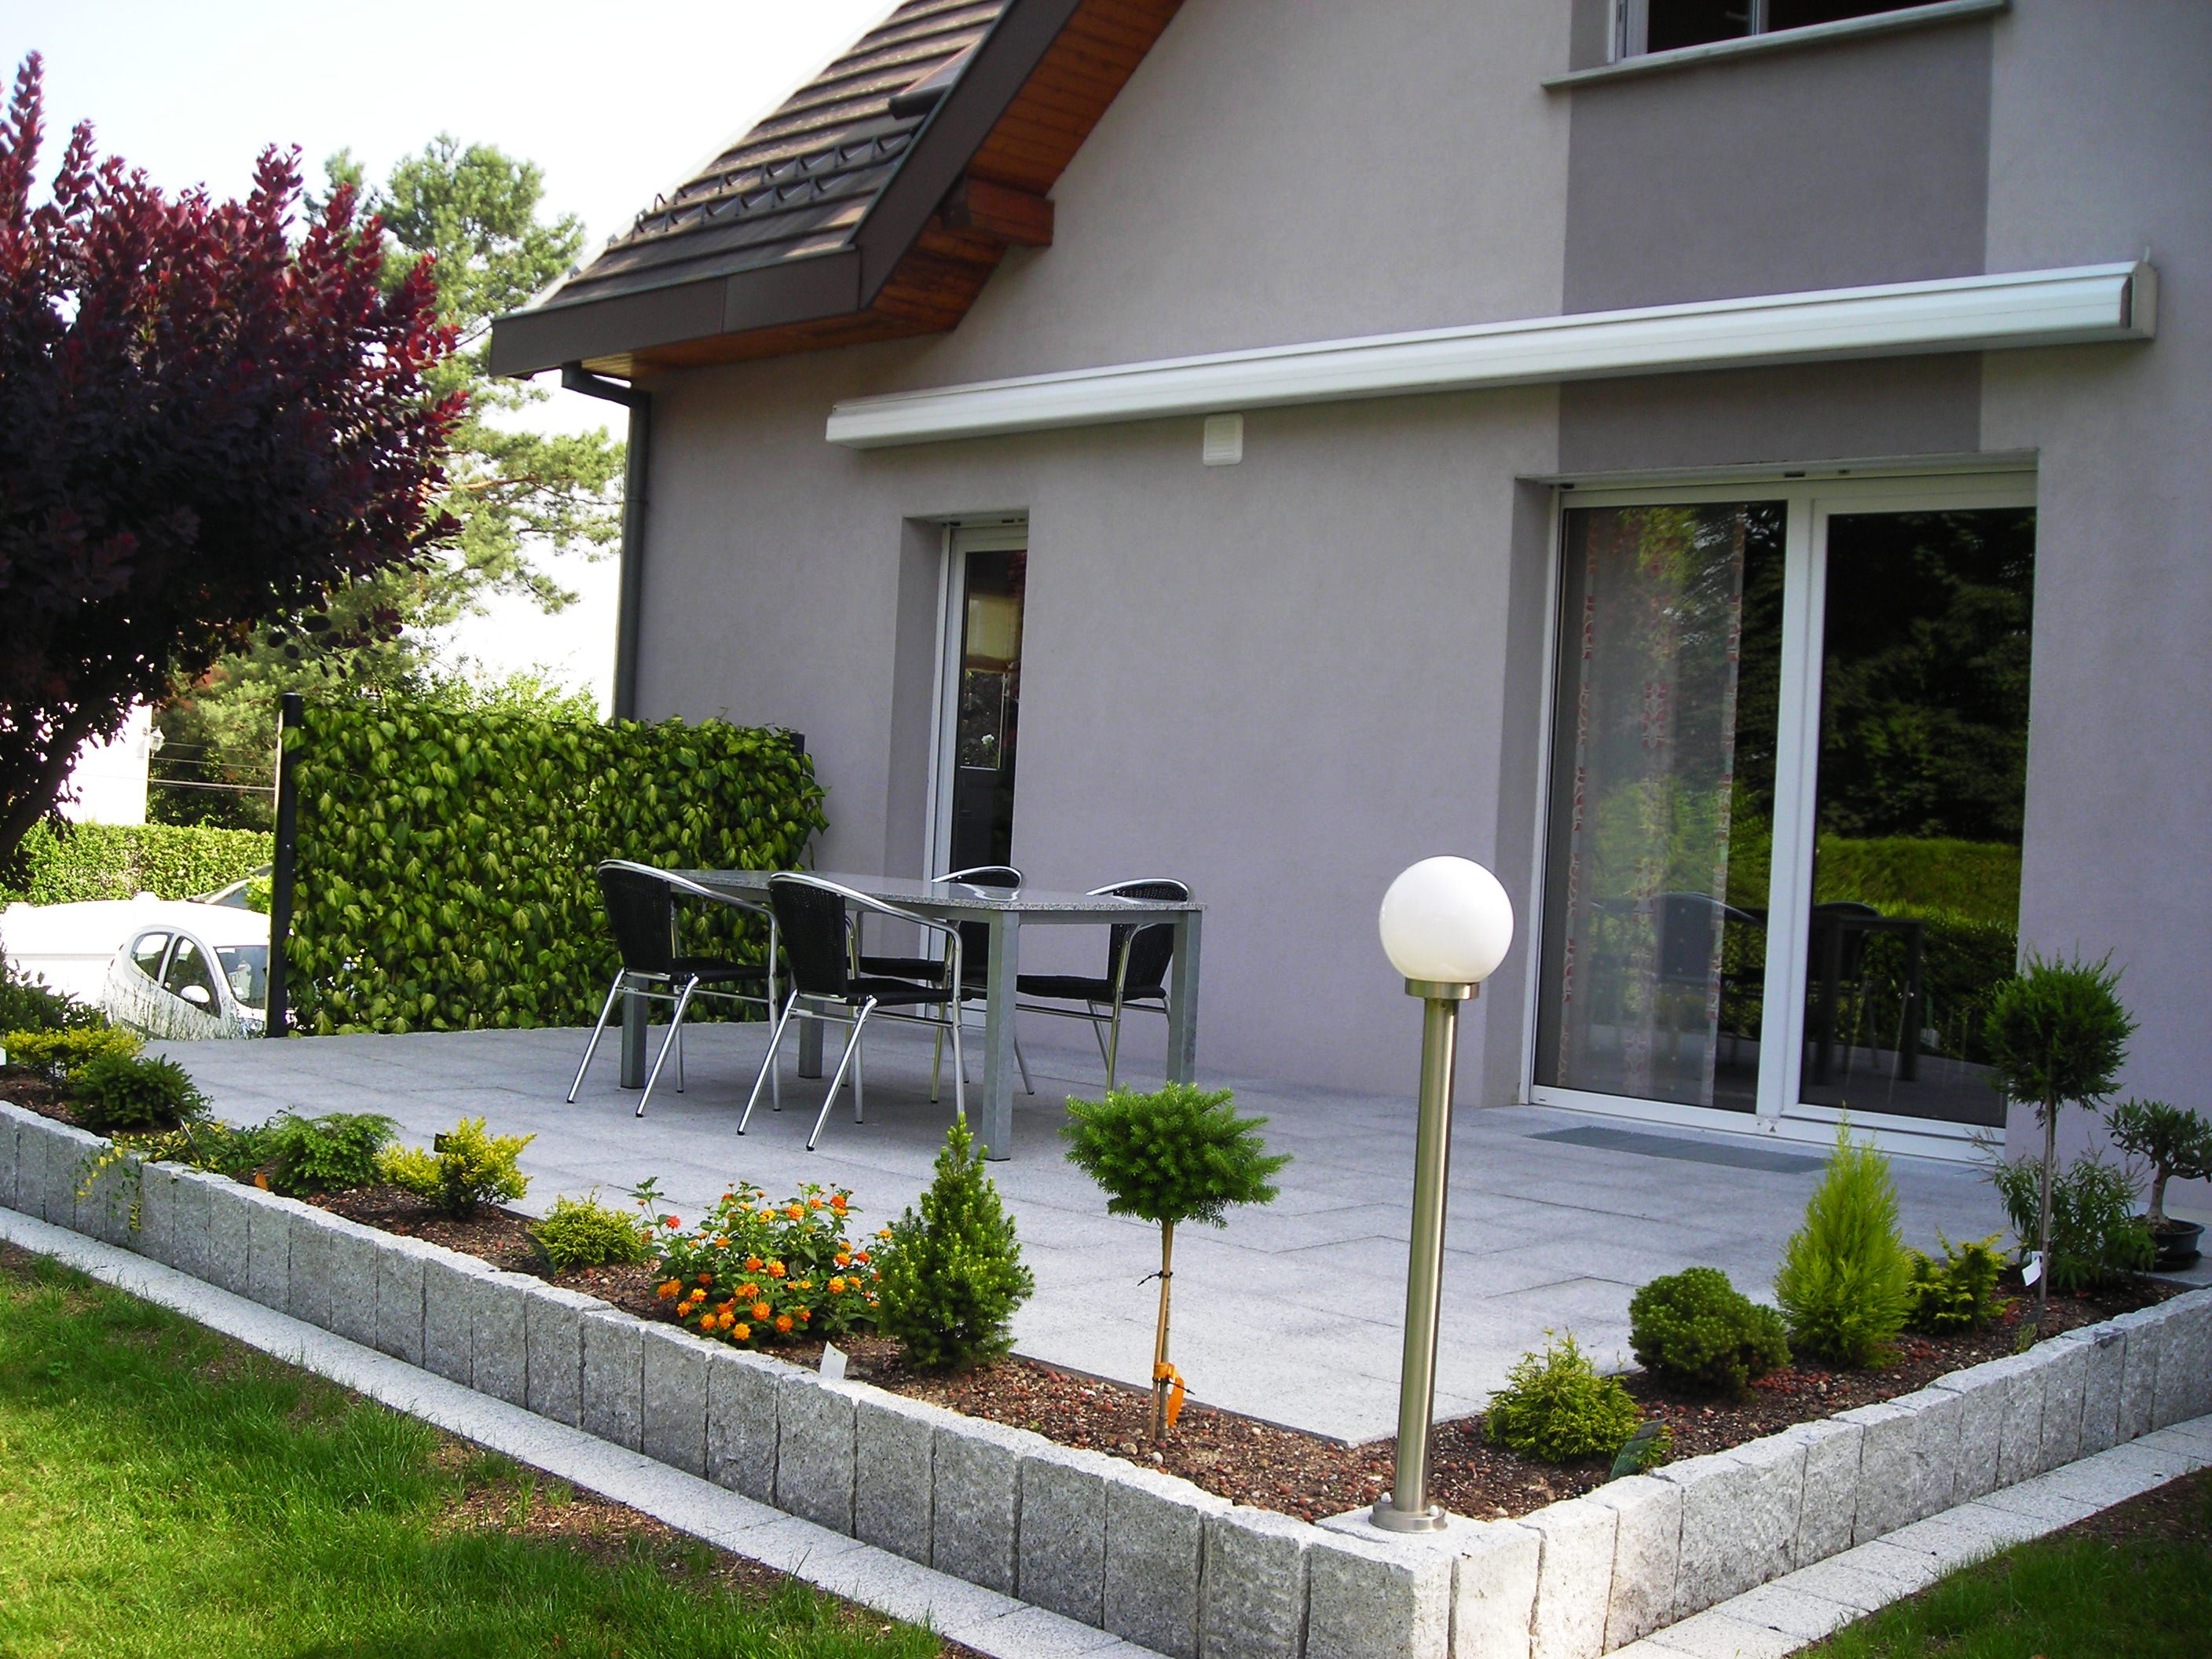 Europavage am nagement ext rieur paysagiste terrasse for Dallage exterieur terrasse